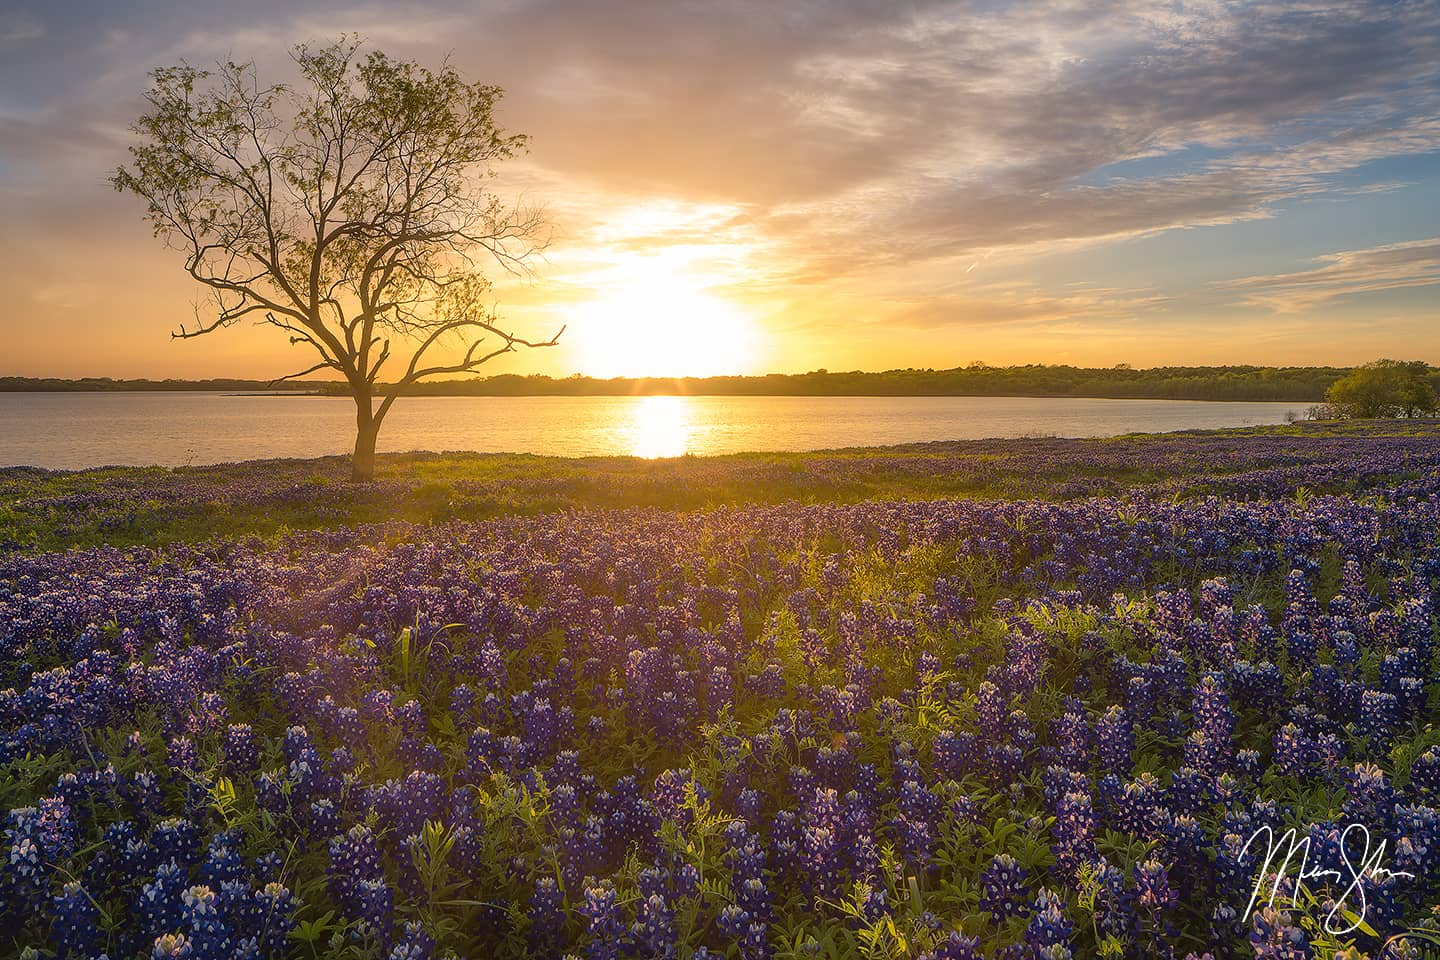 Bluebonnet Sunset - Bardwell Lake, Ennis, Texas